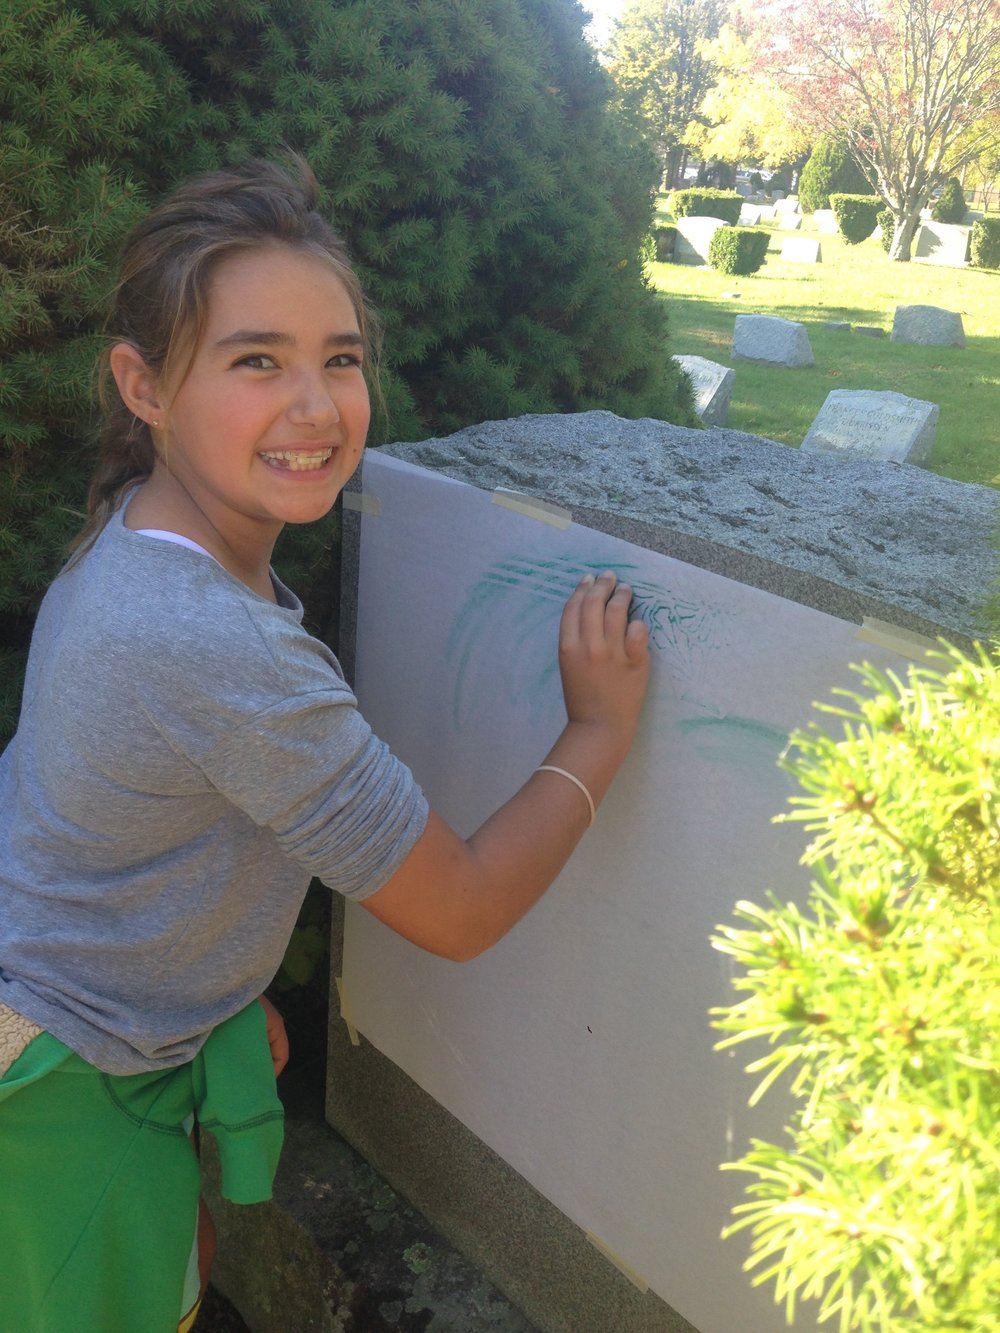 Madeline found a beautiful granite headstone